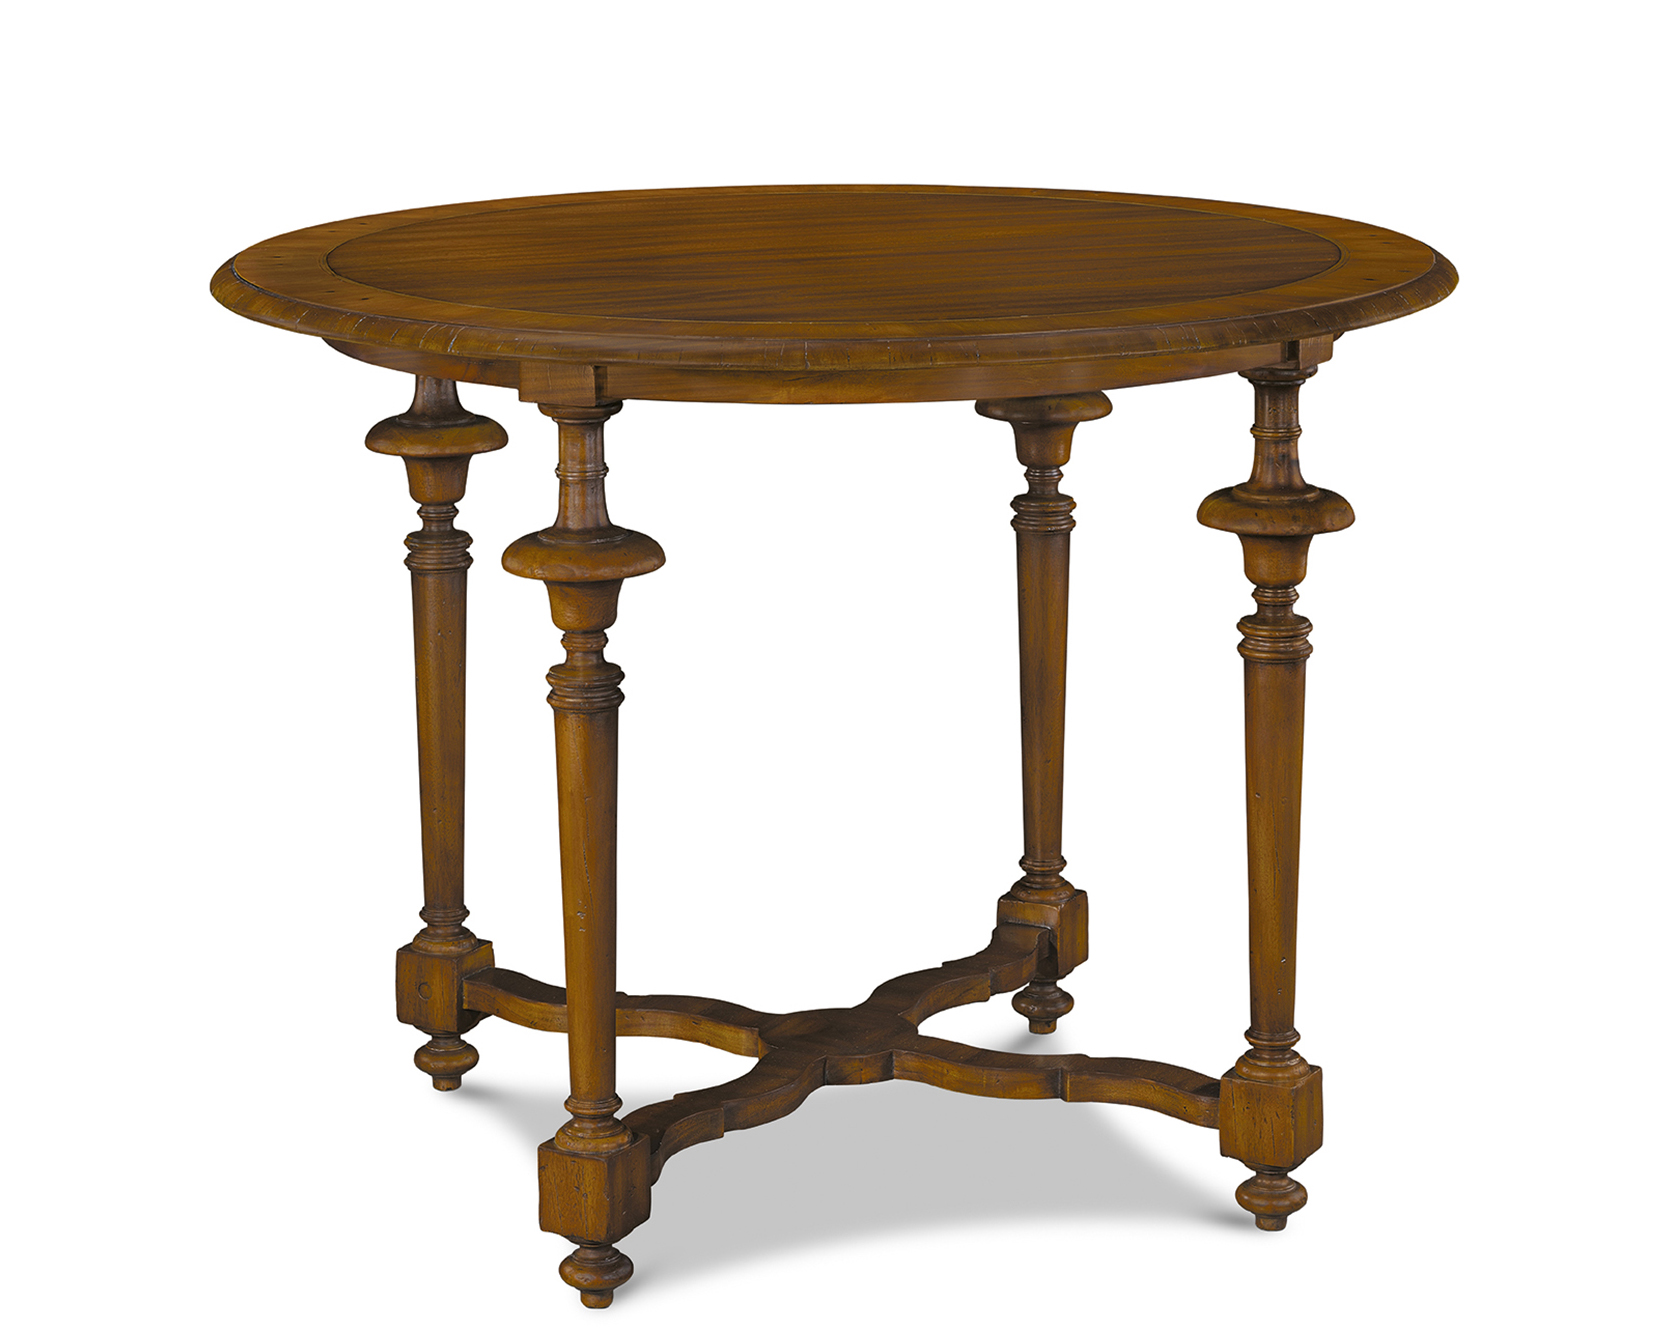 cfm lamp table master furniture product hayneedle round tables hooker drawer sanctuary